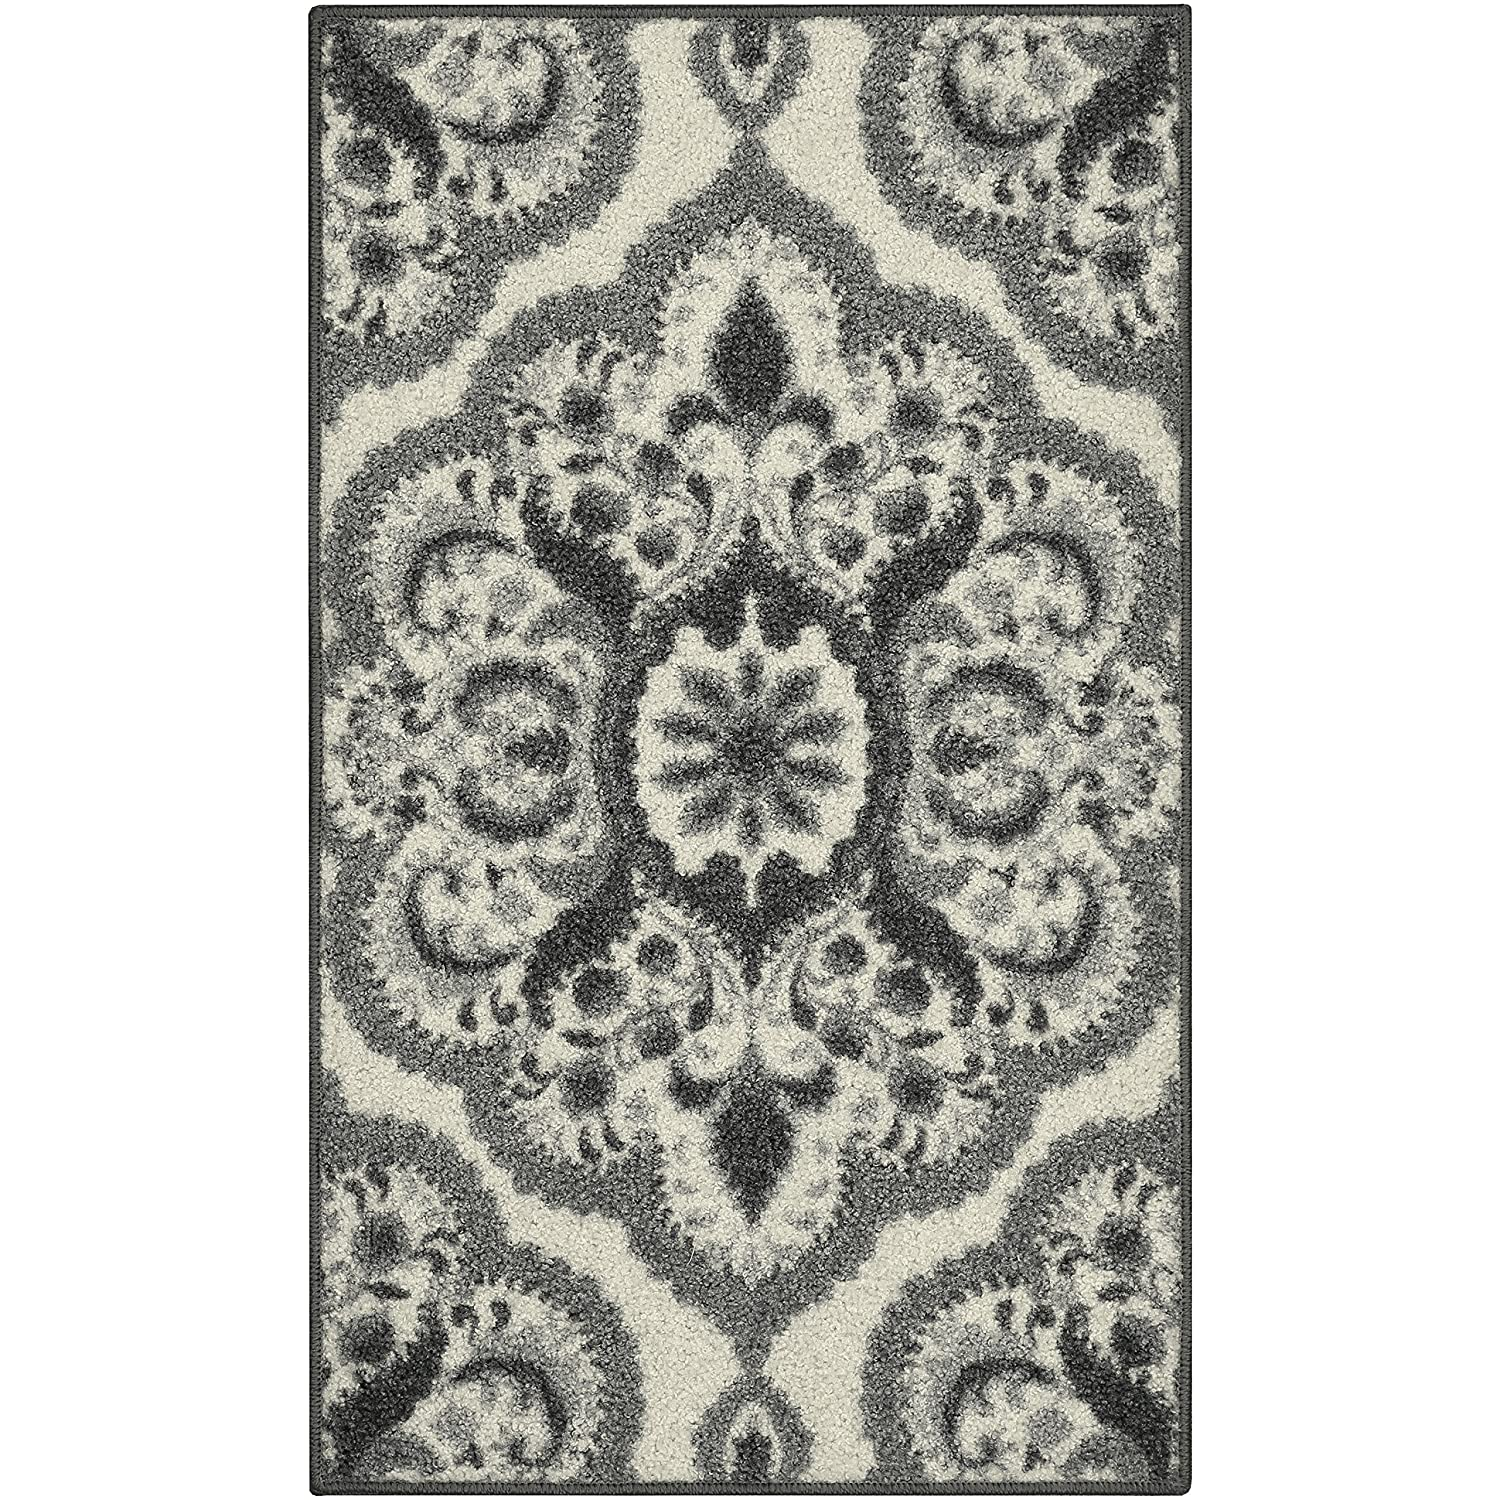 Maples Rugs Kitchen Rug - Vivian 2 x 3 Non Skid Small Accent Throw Rugs [Made in USA] for Entryway and Bedroom, 1'8 x 2'10, Grey